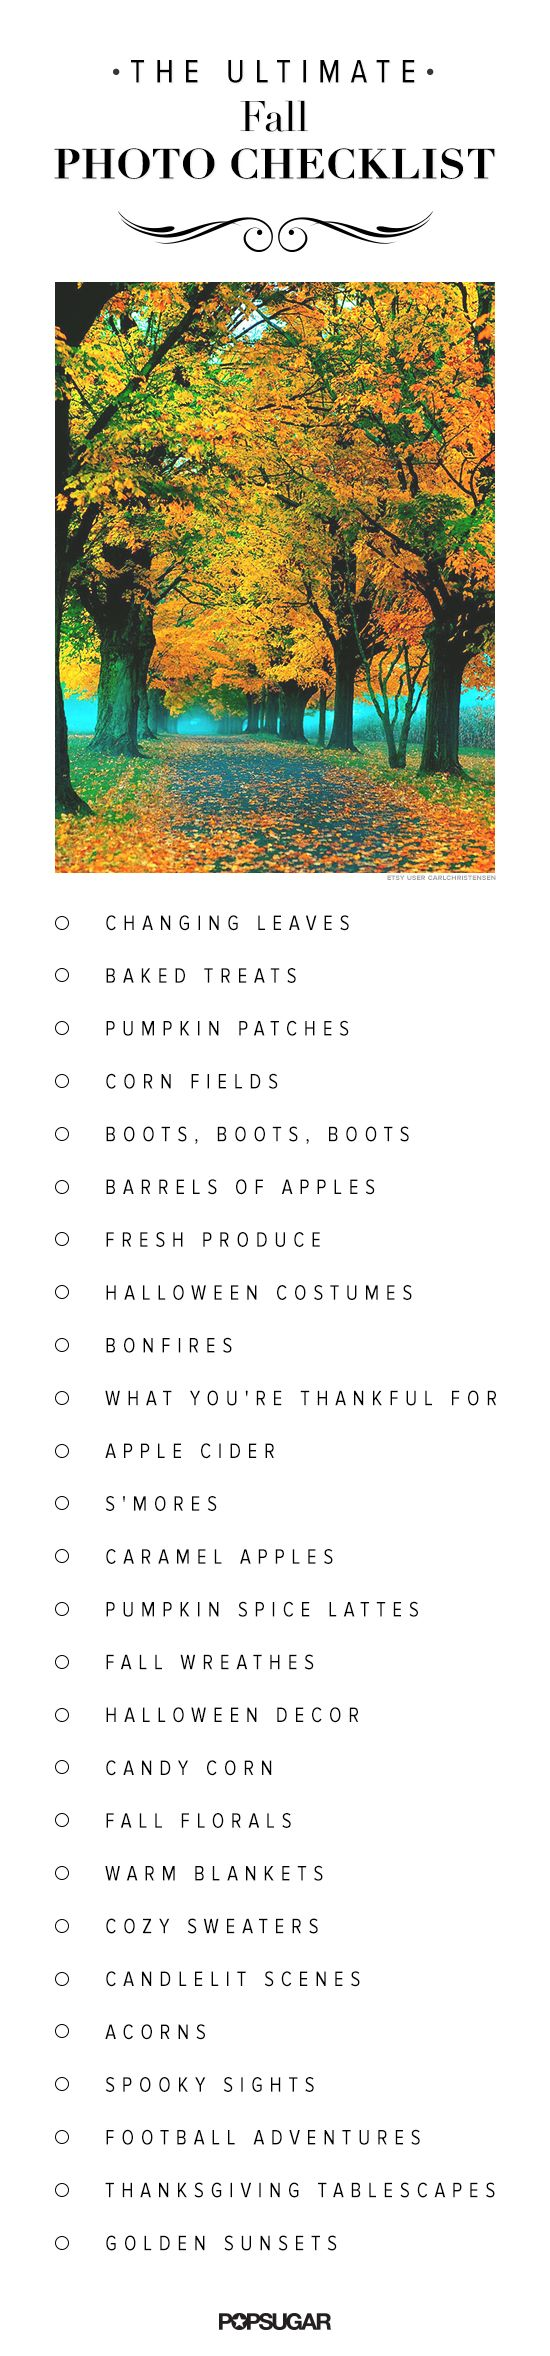 A Fall photo checklist to keep handy when apple picking, foliage viewing, pumpkin spice drinking!